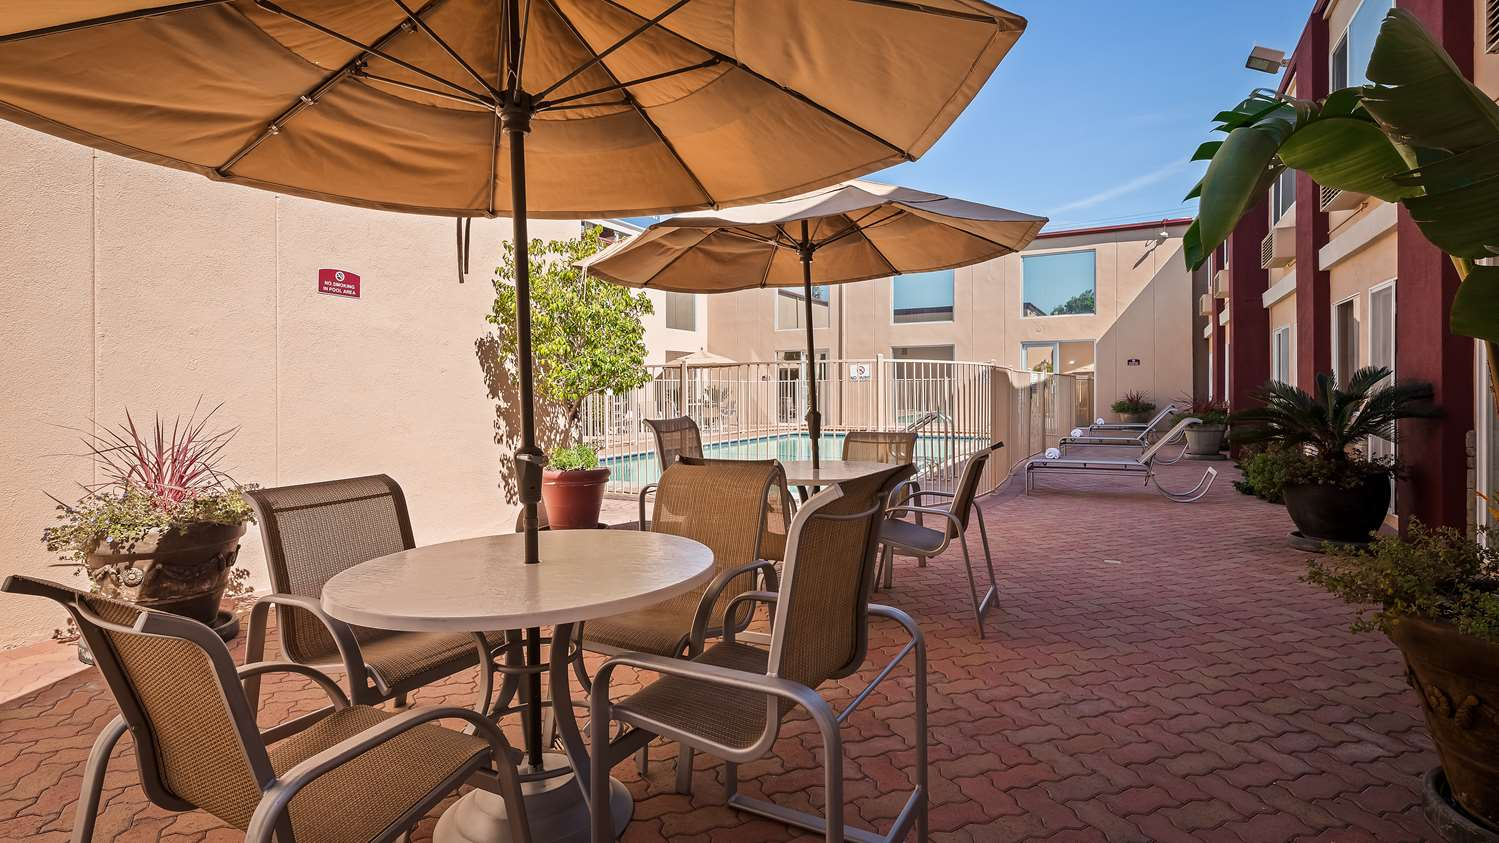 Best Western Canoga Park Patio with two tables and umbrellas